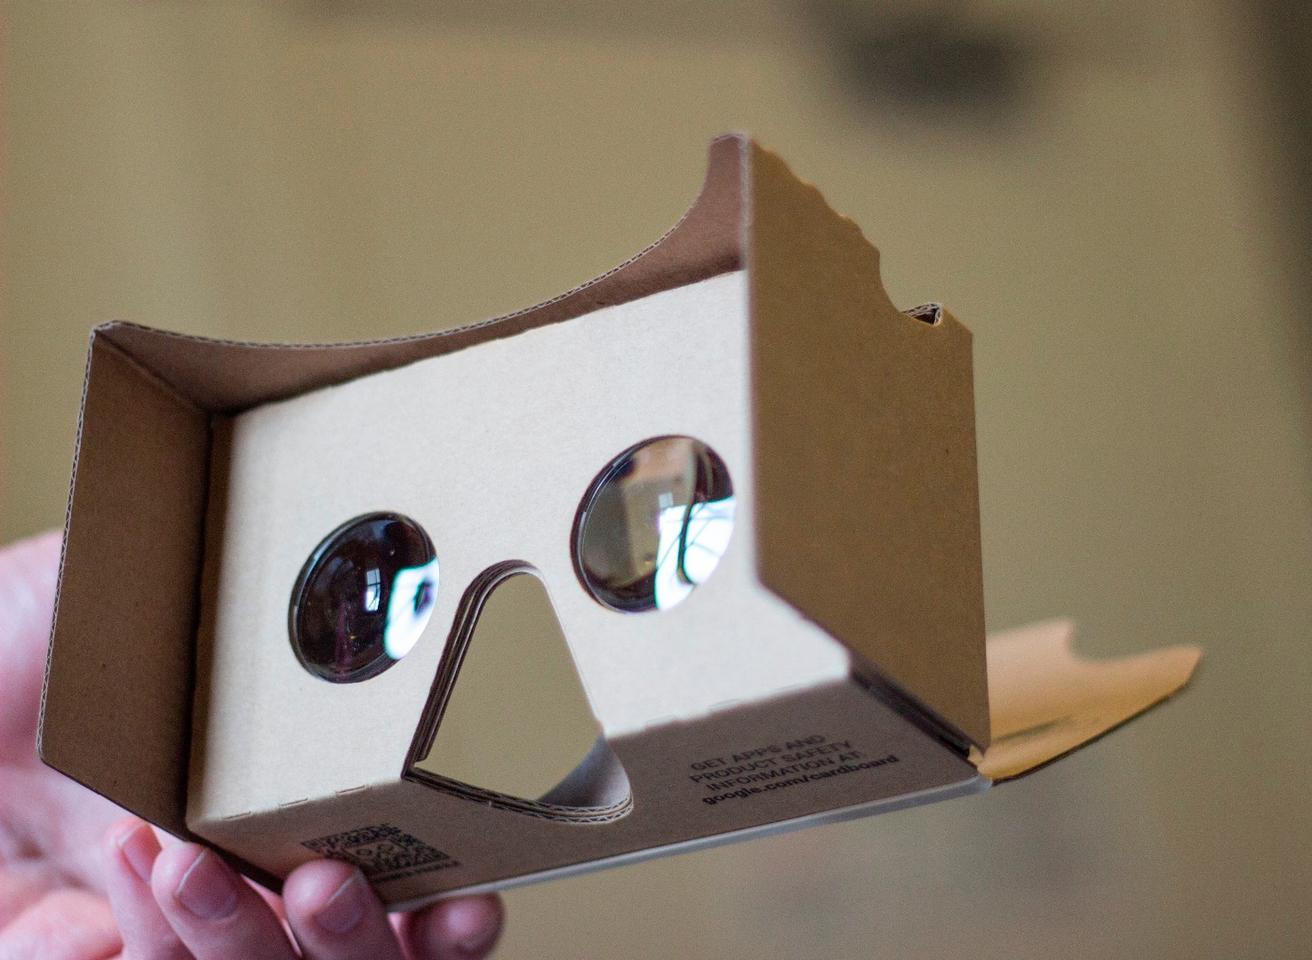 A put-together Google Cardboard 2 kit